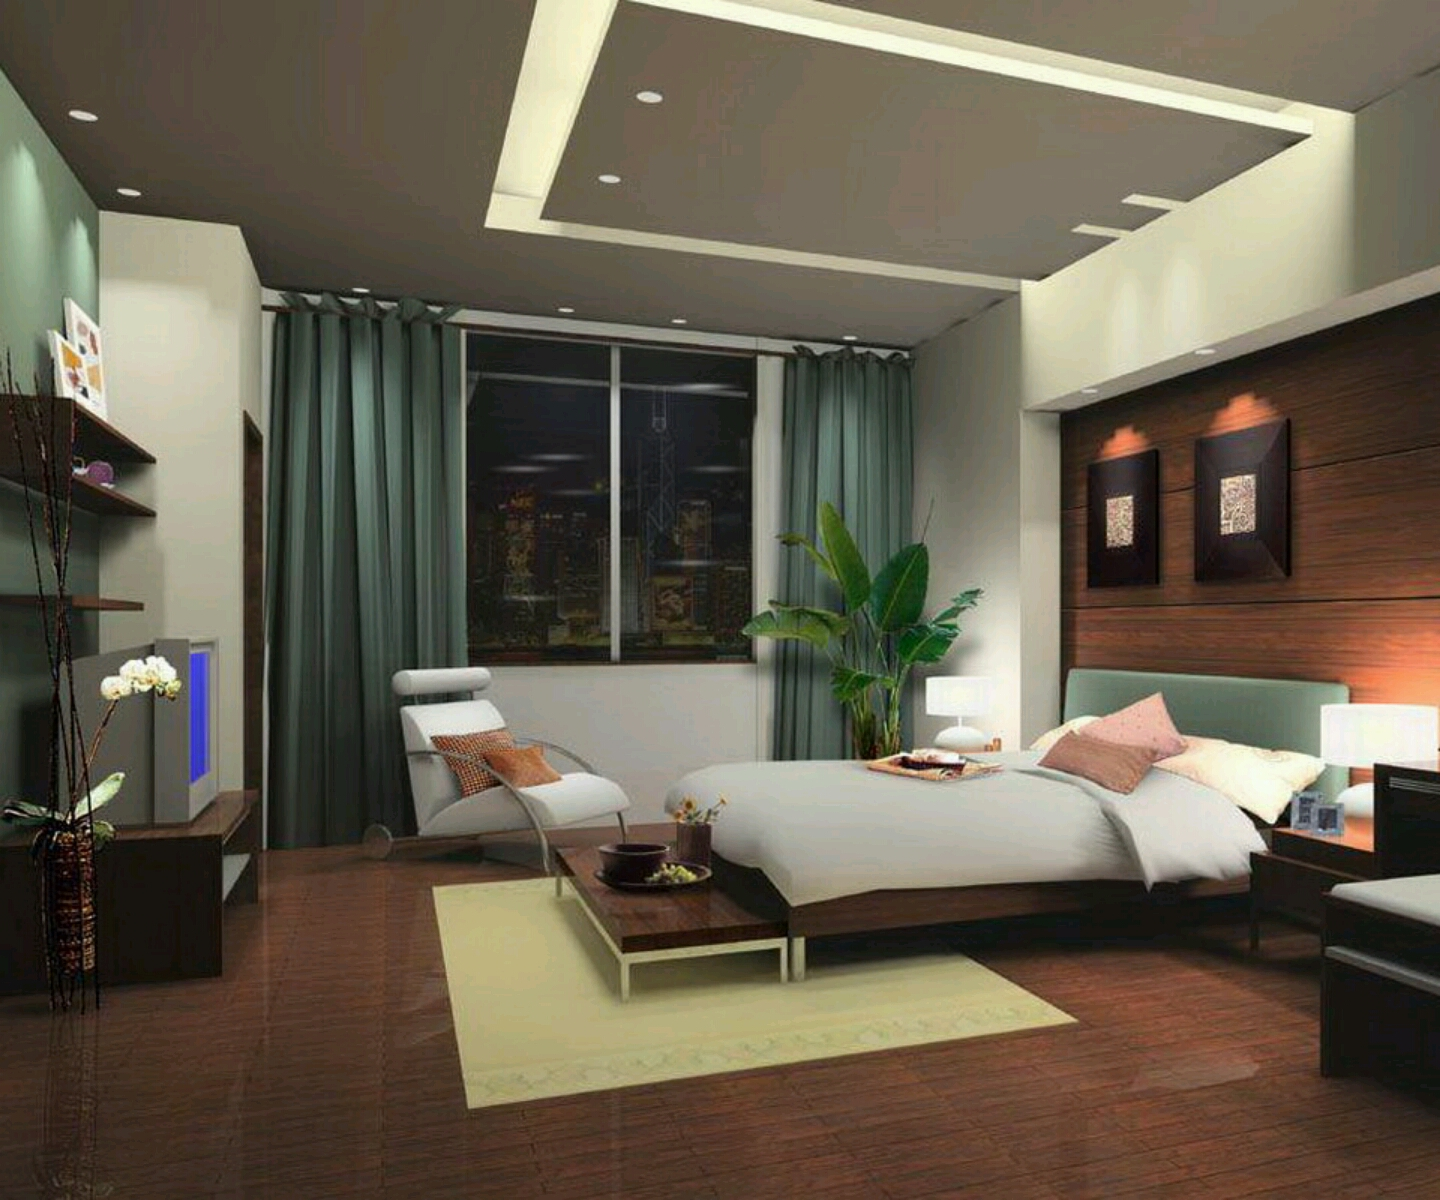 New home designs latest modern bedrooms designs best ideas for Bedroom designs ideas modern